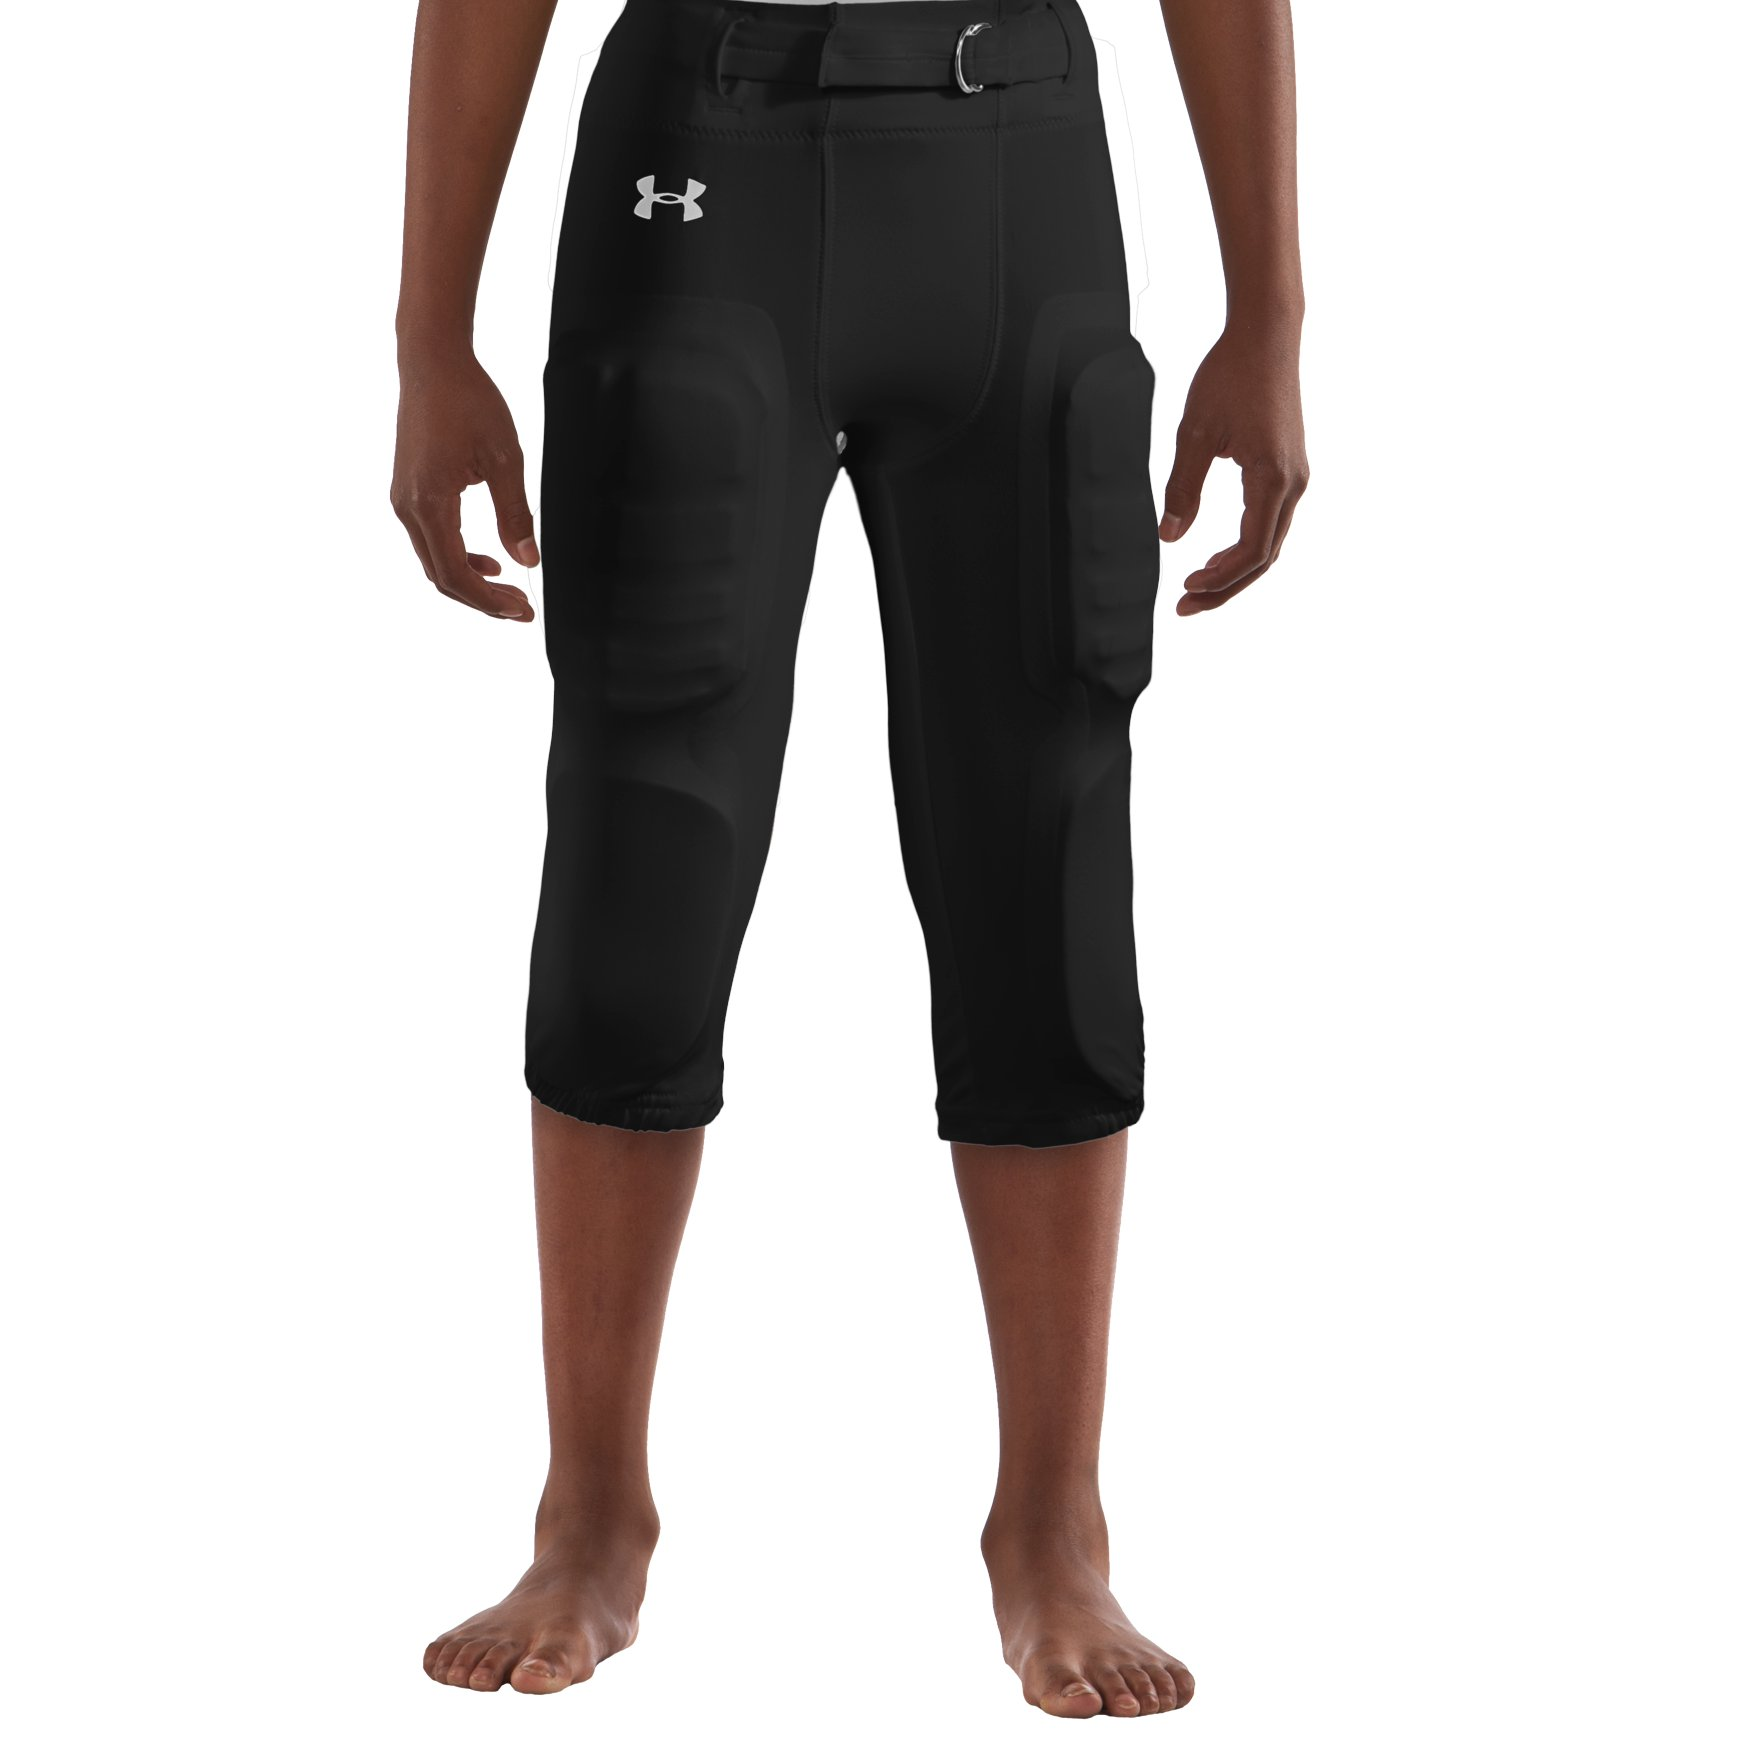 Boys Under Armour Integrated Football Pants Ebay